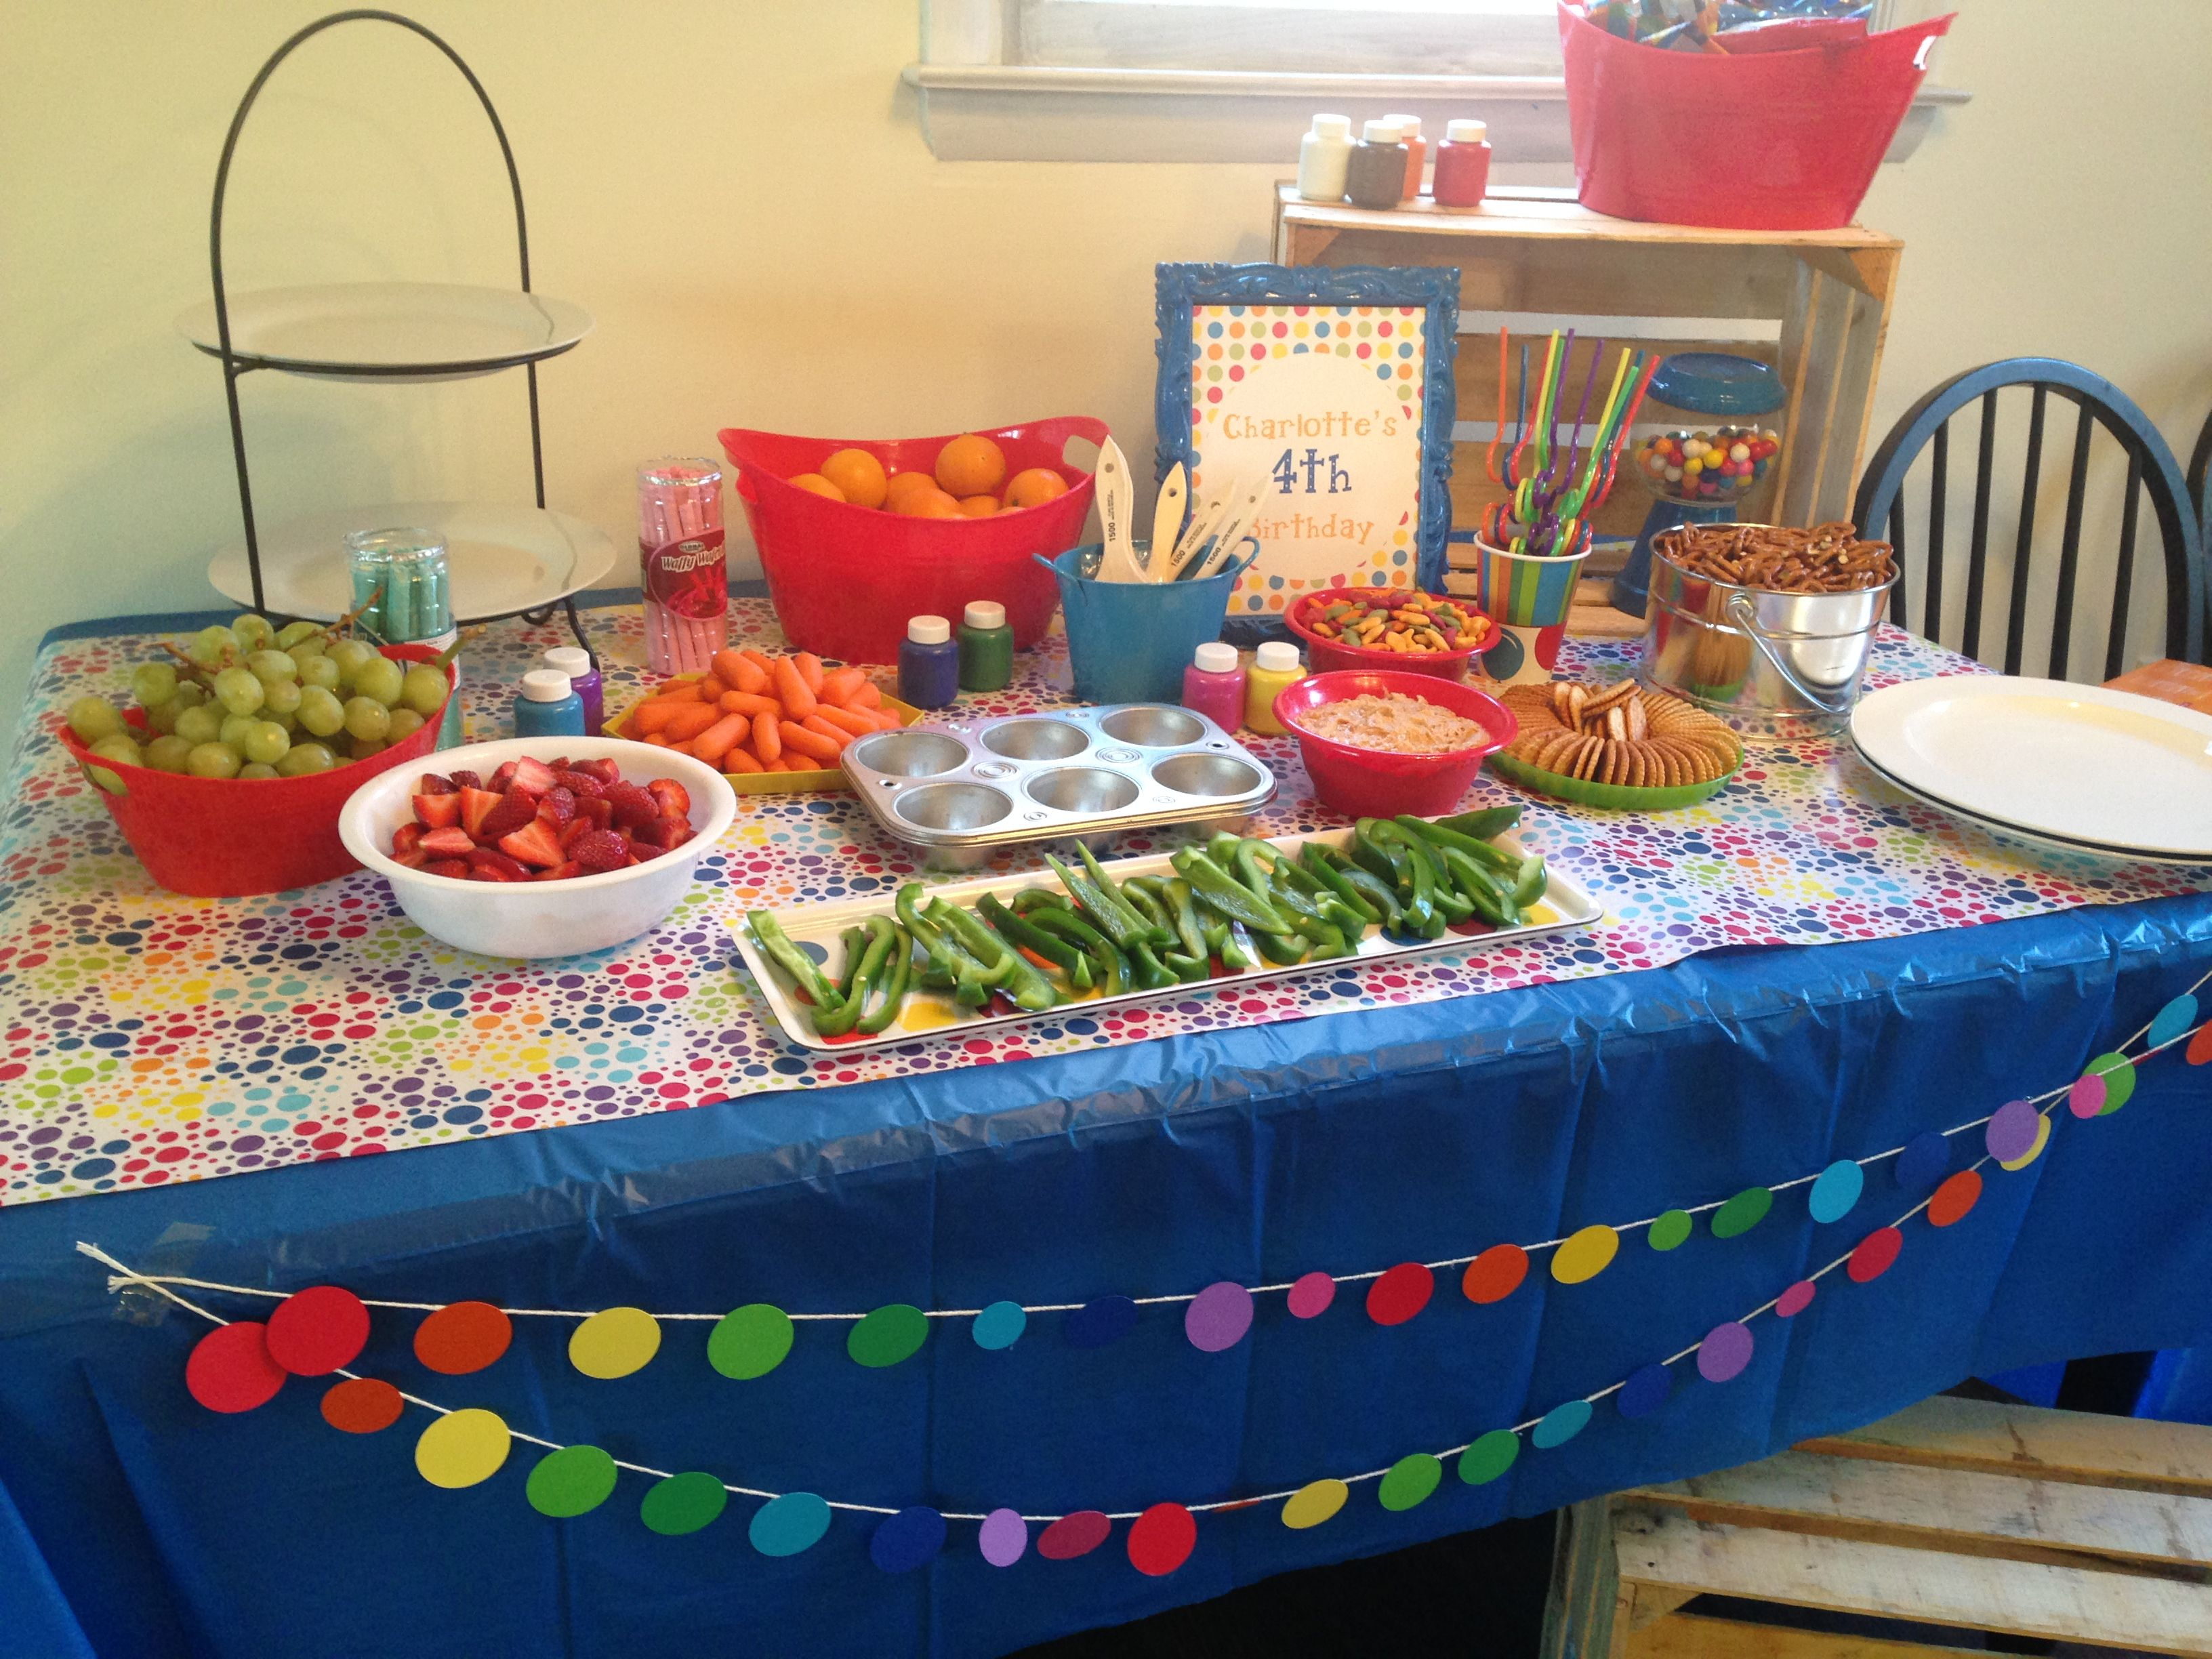 rainbow party snack table we tried to have various colors red